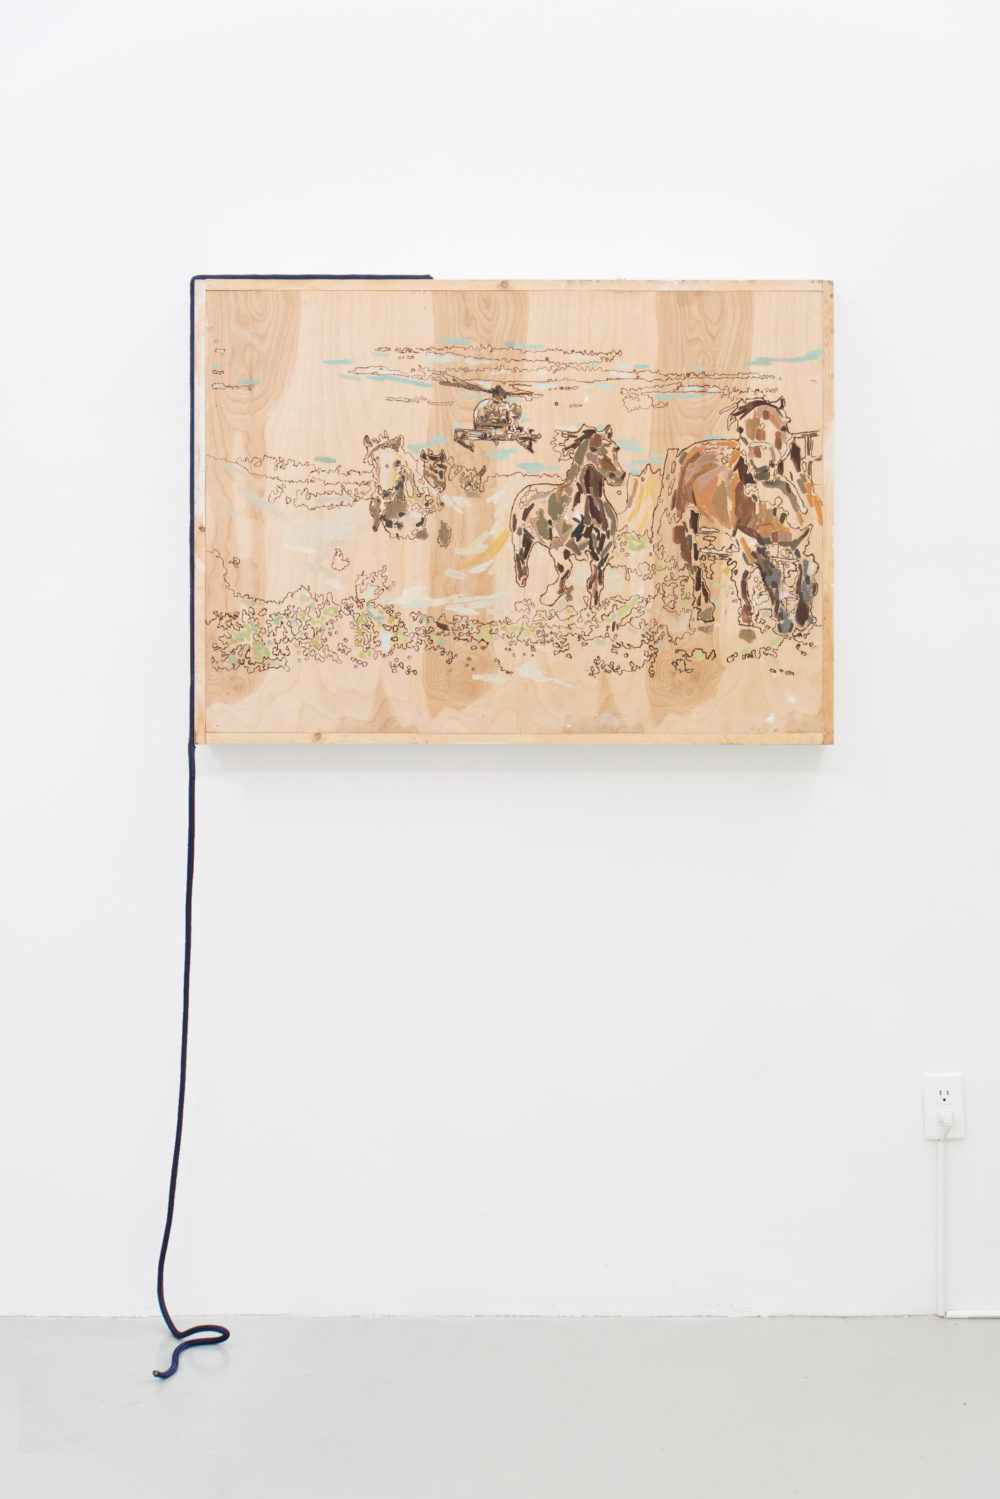 Rebecca Peel Present-day New Mexico, 2016 Wood, gouache, galvanized steel, polyester rope